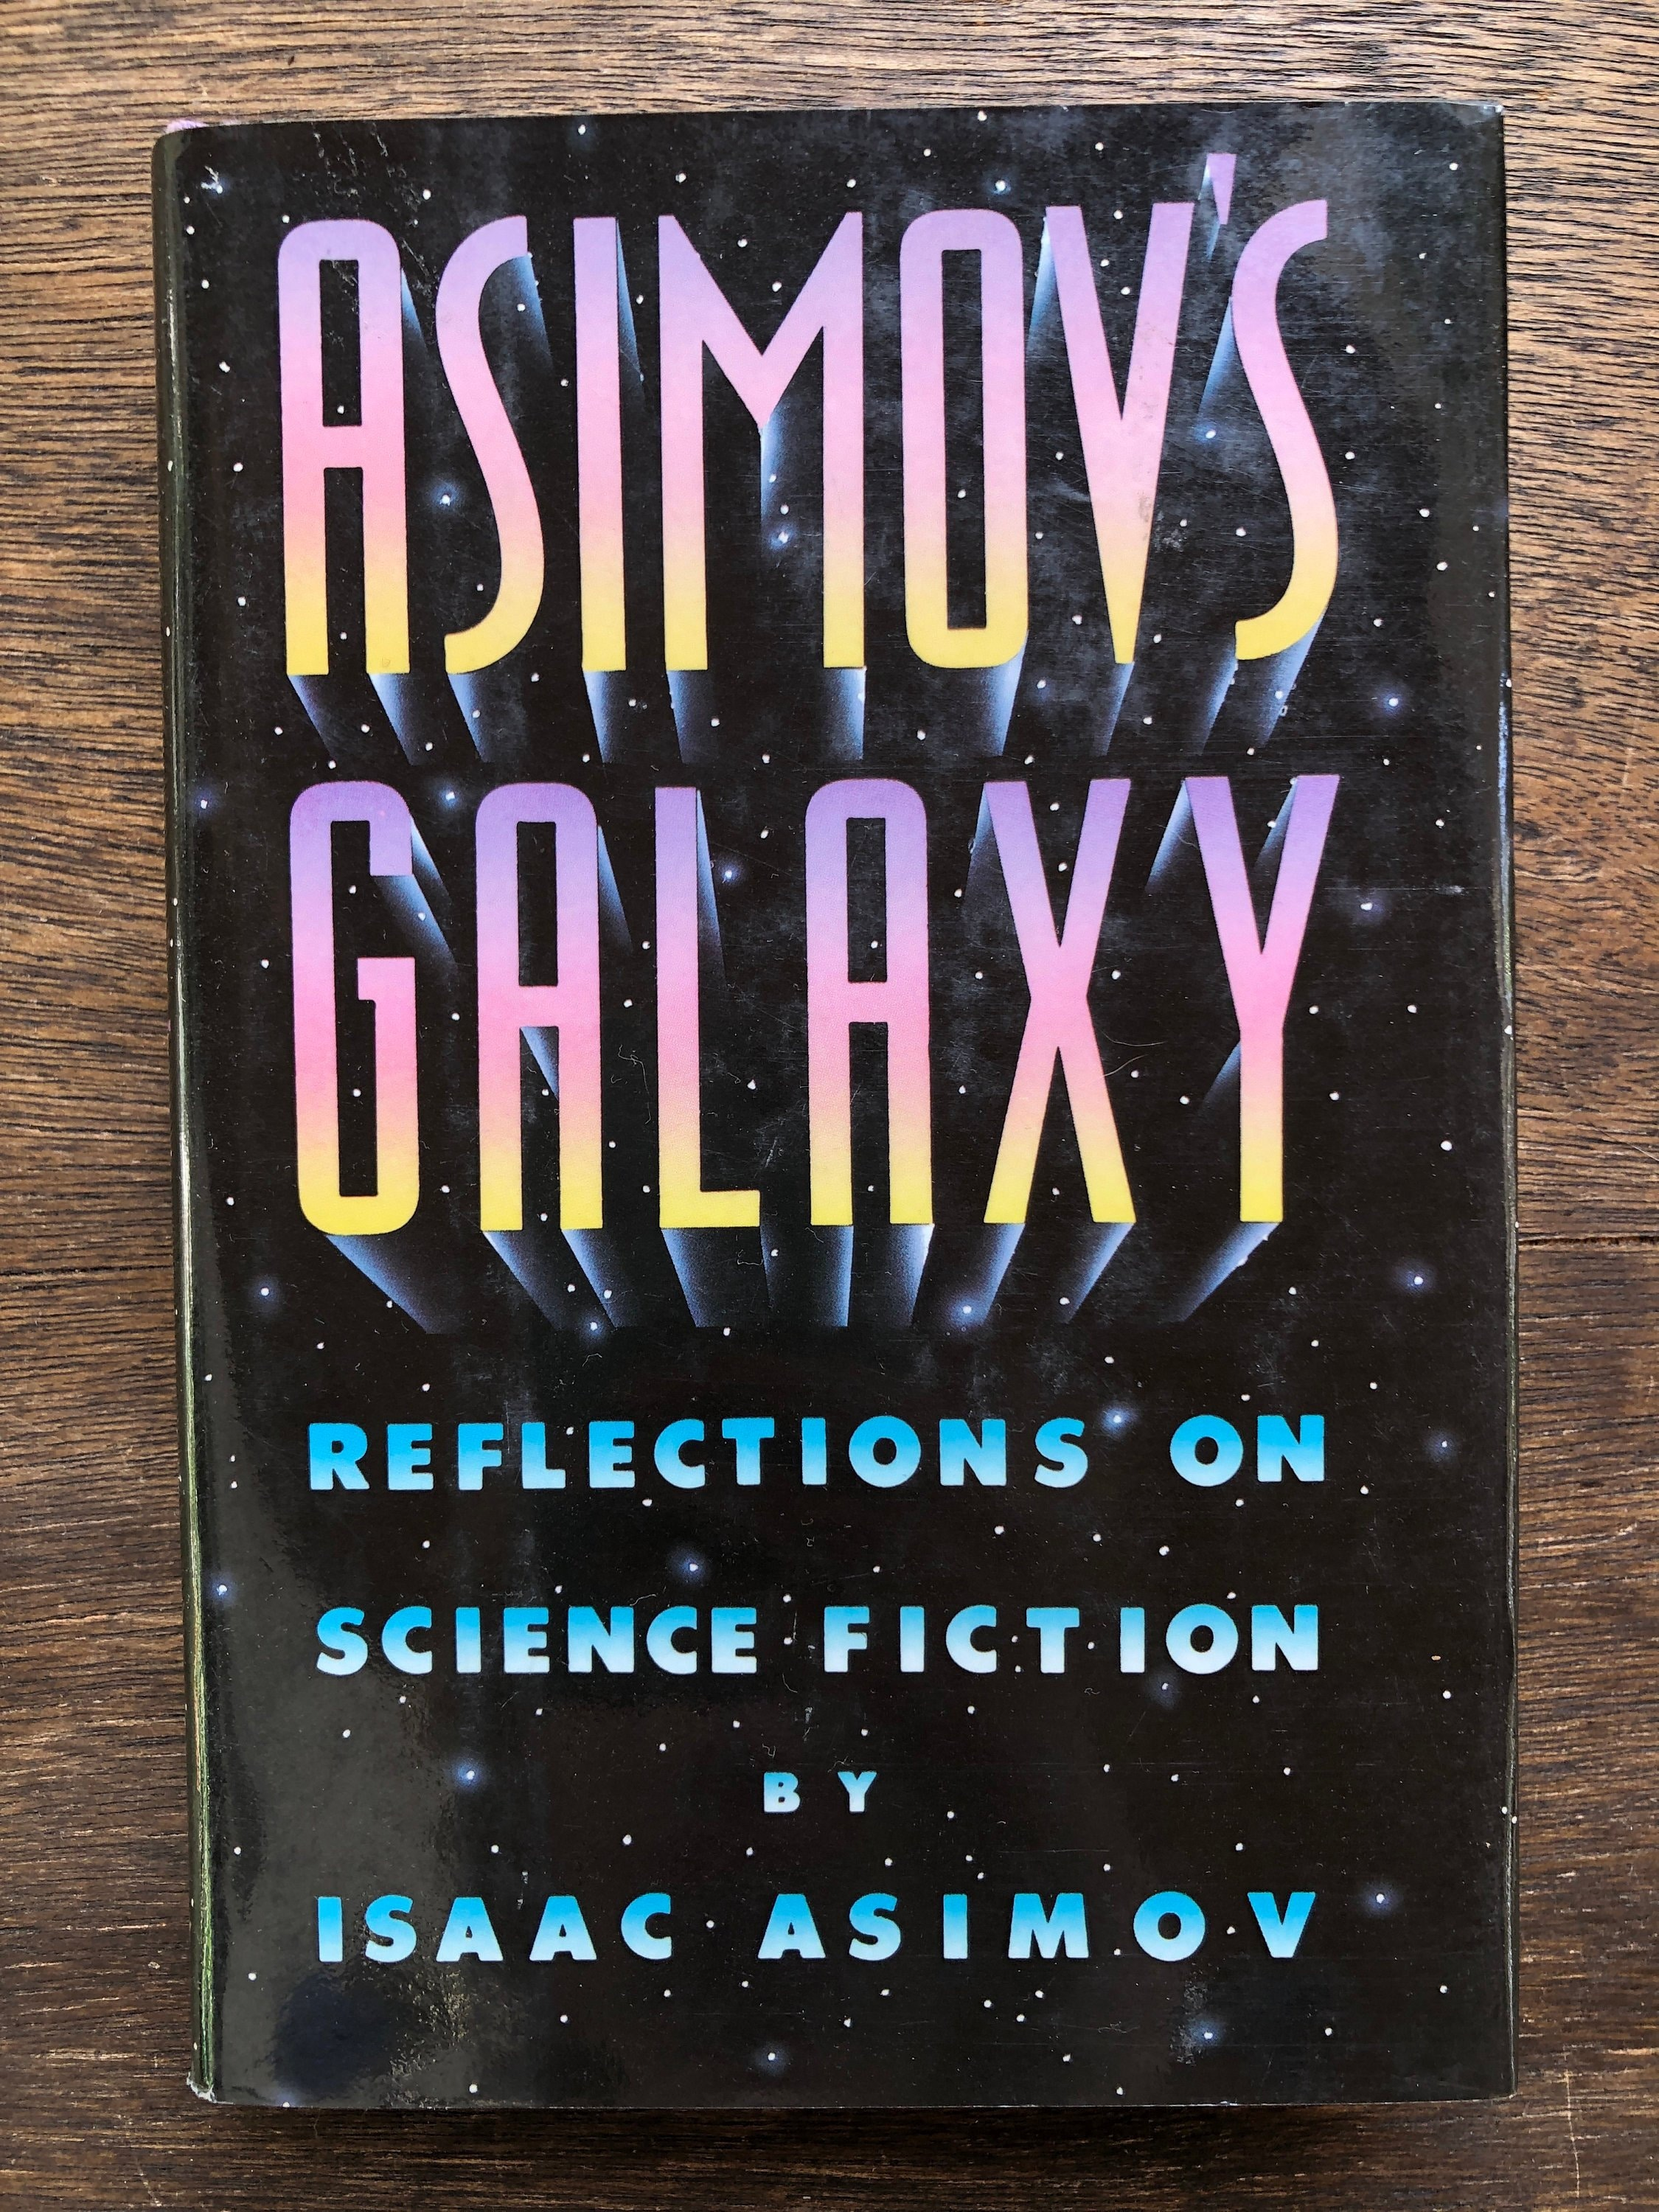 asimovs galaxy reflections on science fiction by isaac asimov     science fiction essay collection hardcover